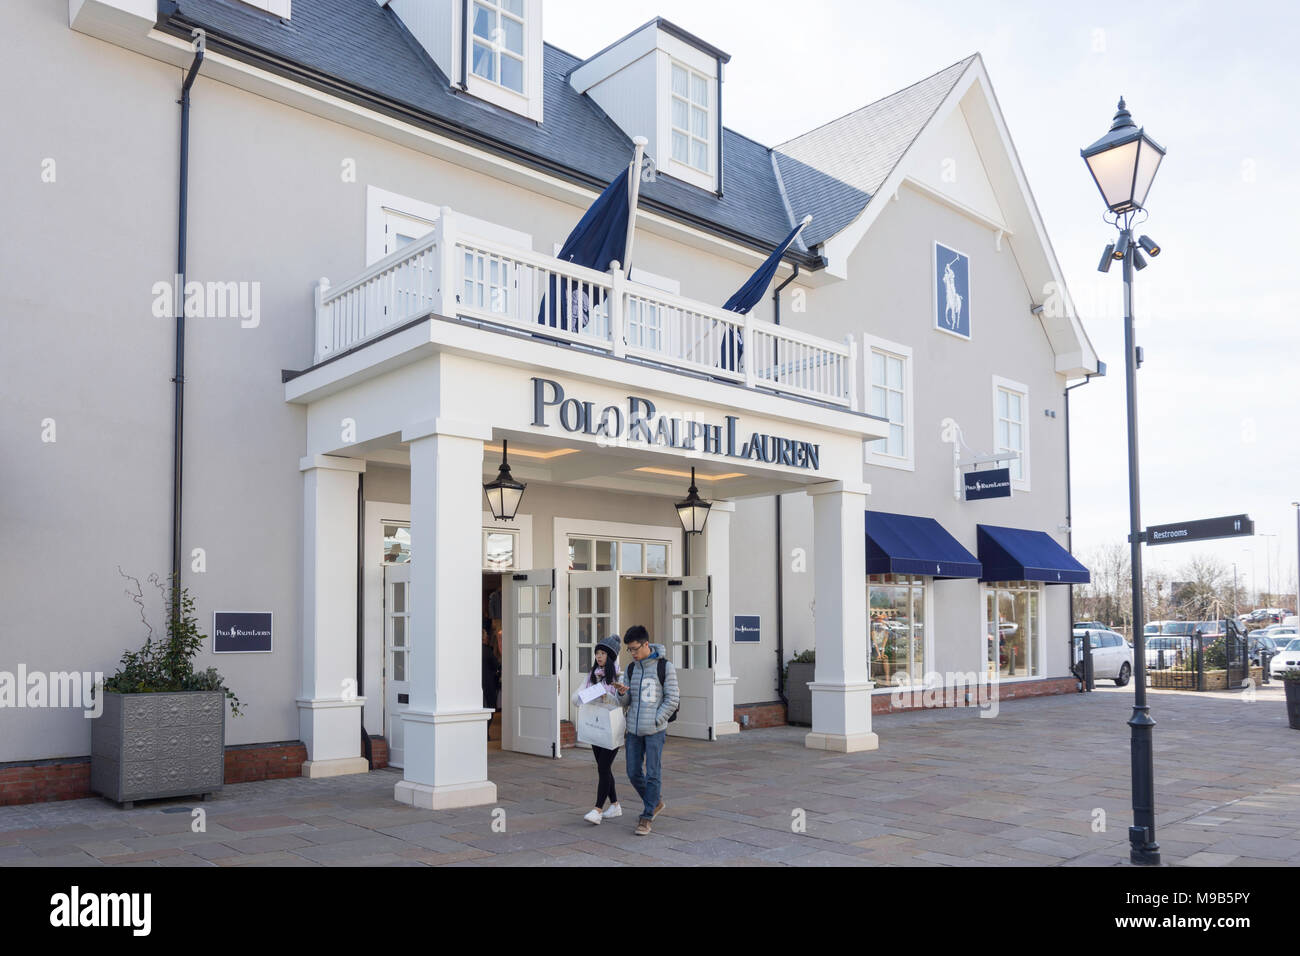 Polo Ralph Lauren store at Bicester Village Outlet Shopping Centre, Bicester, Oxfordshire, England, United Kingdom - Stock Image